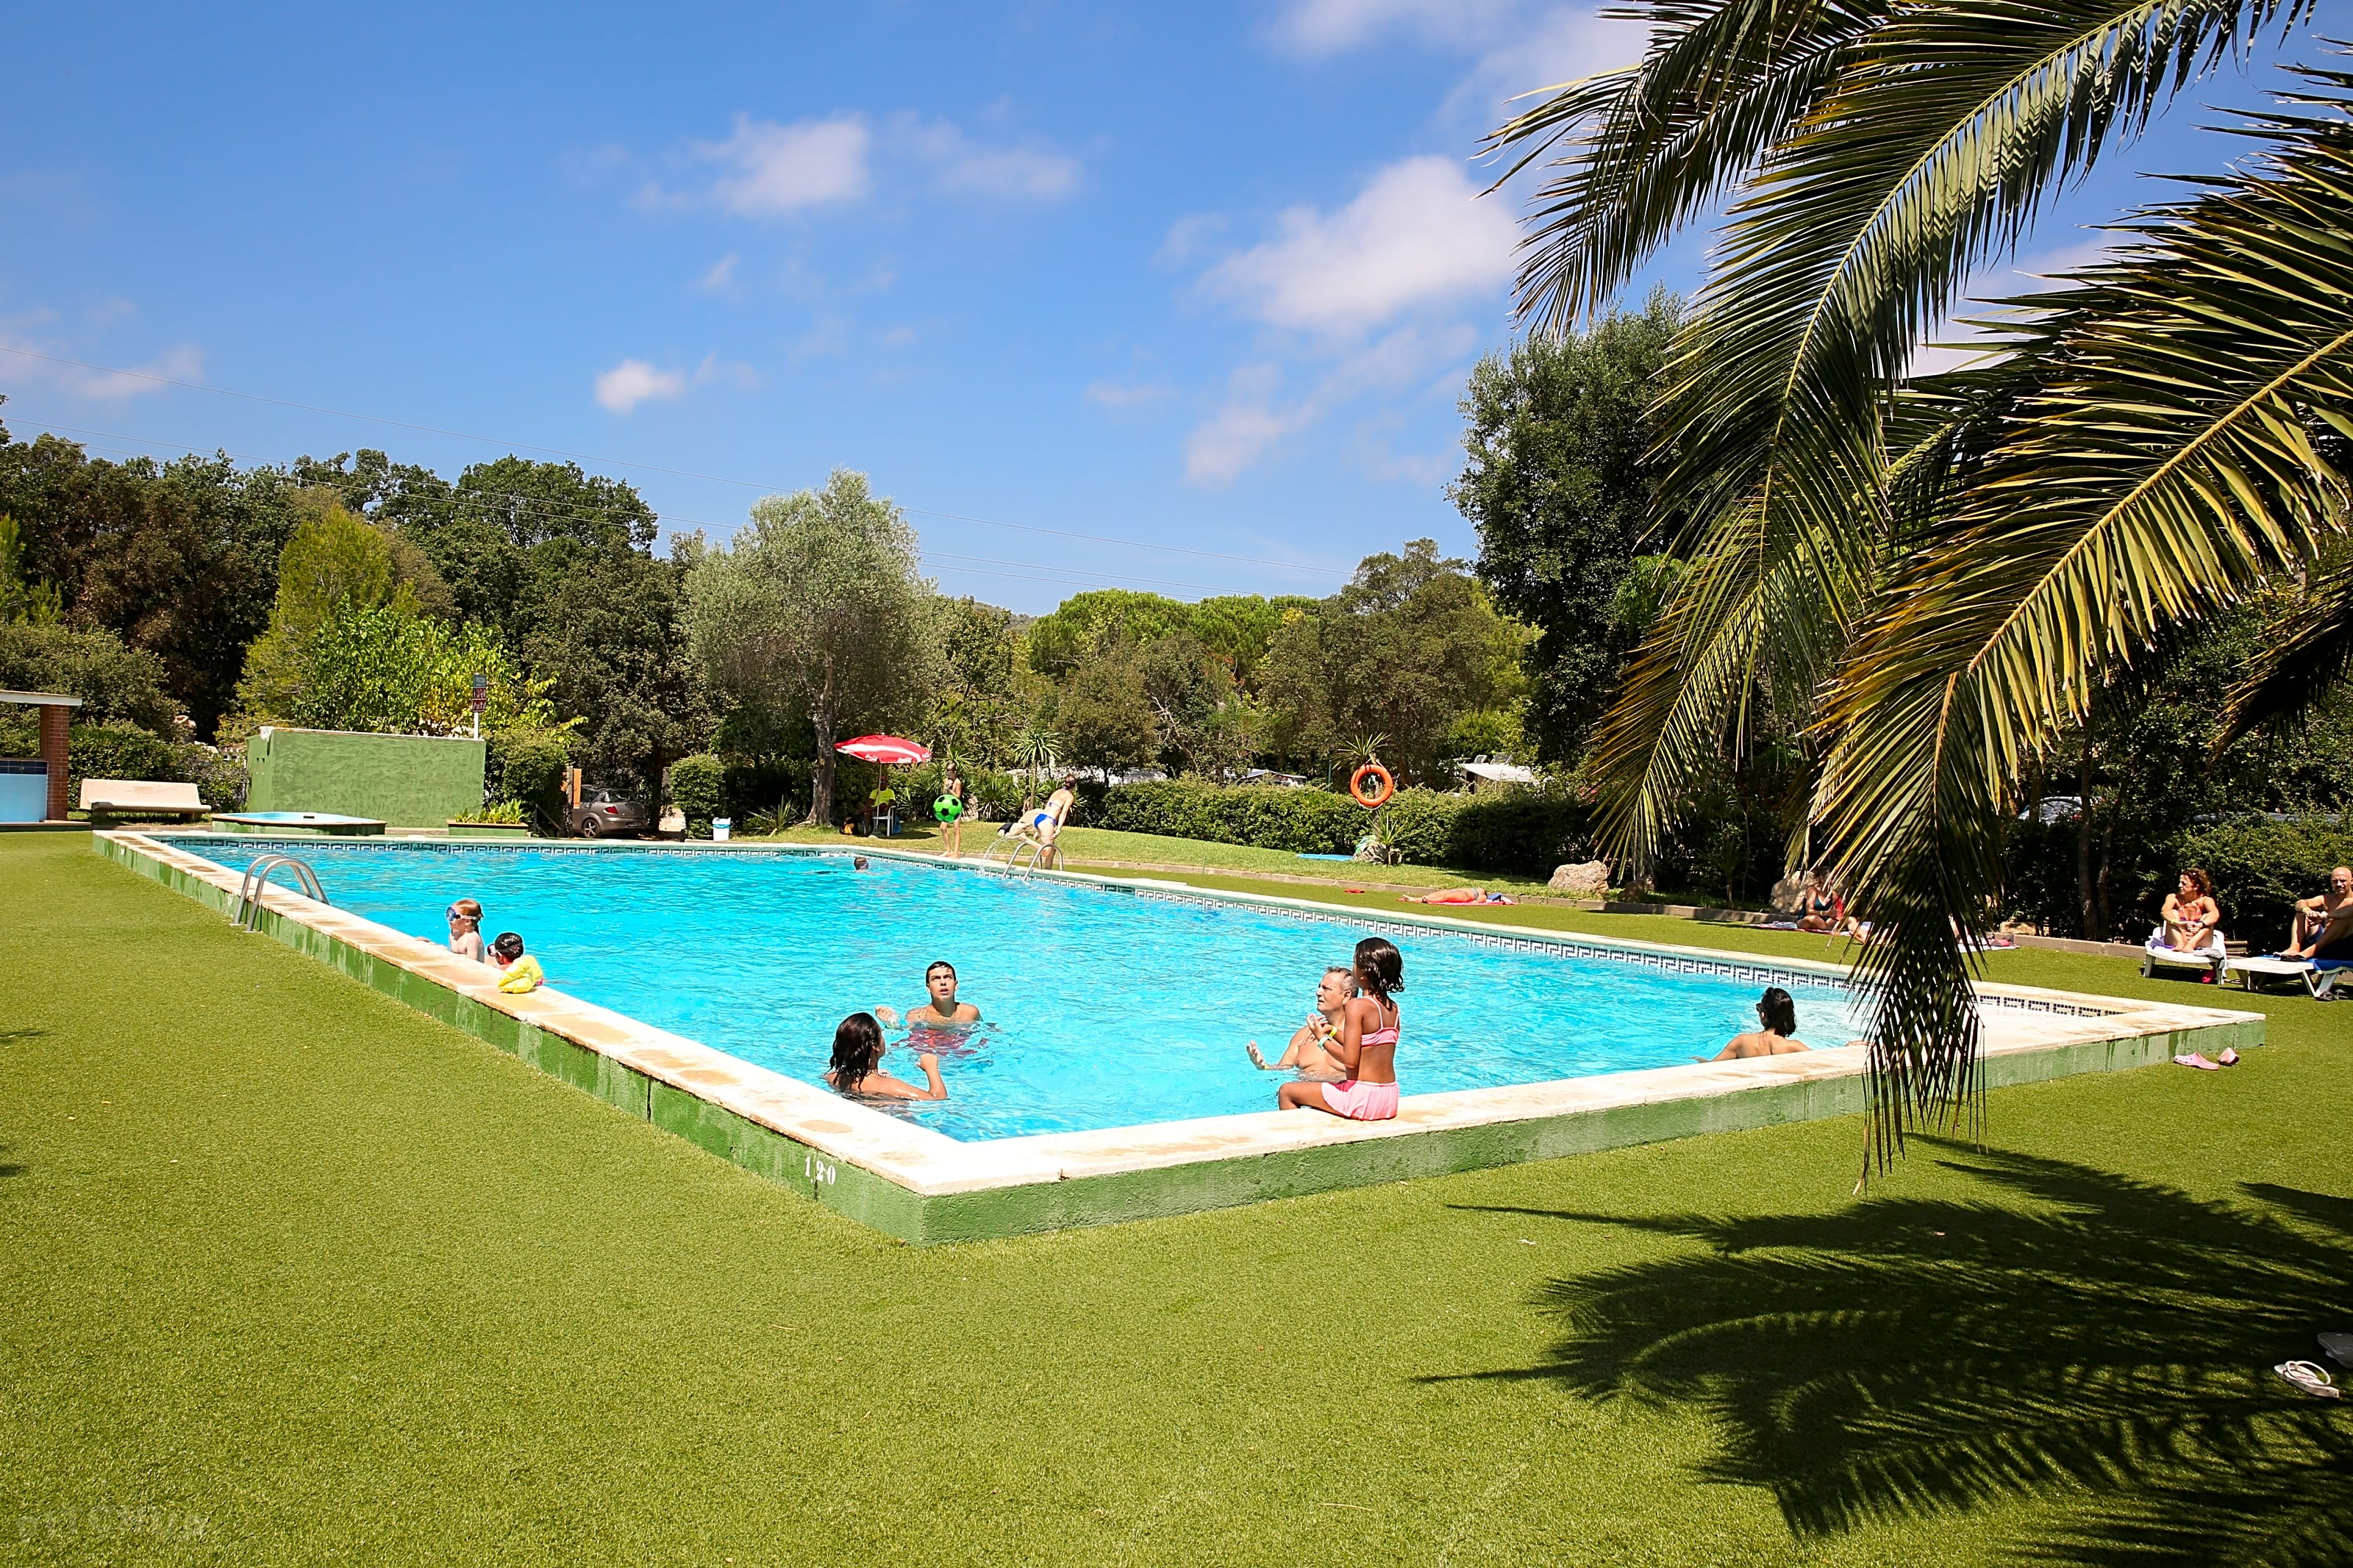 Camping 3 Estrellas Costa Brava Vall Llobrega Updated 2021 Prices Pitchup